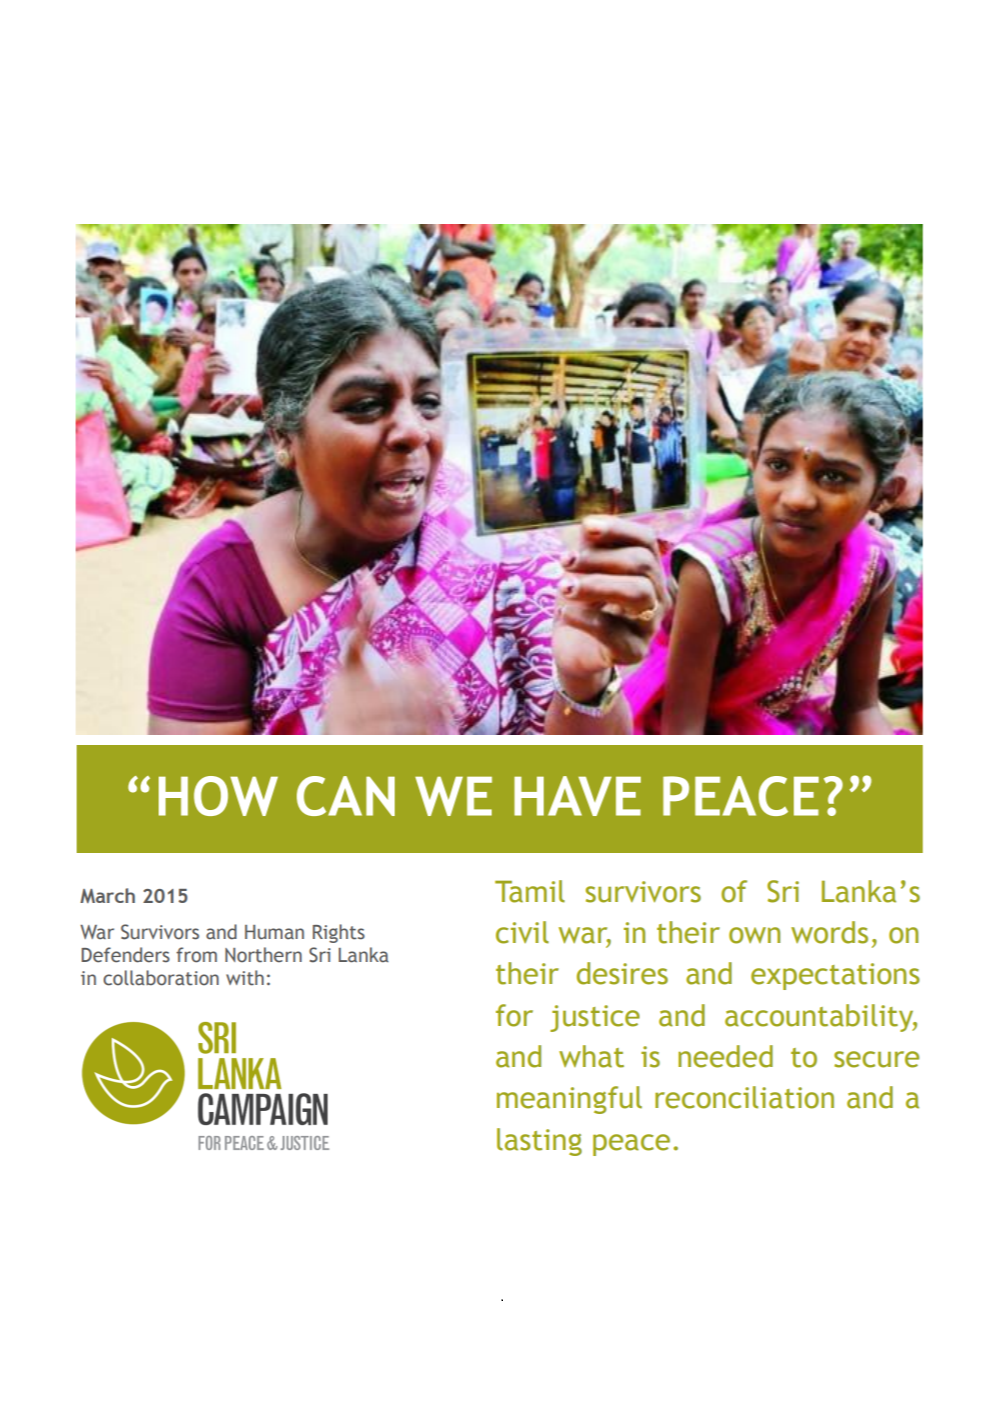 """How can we have peace?"": War Survivors' Demands, Sri Lanka Campaign, March 2015"